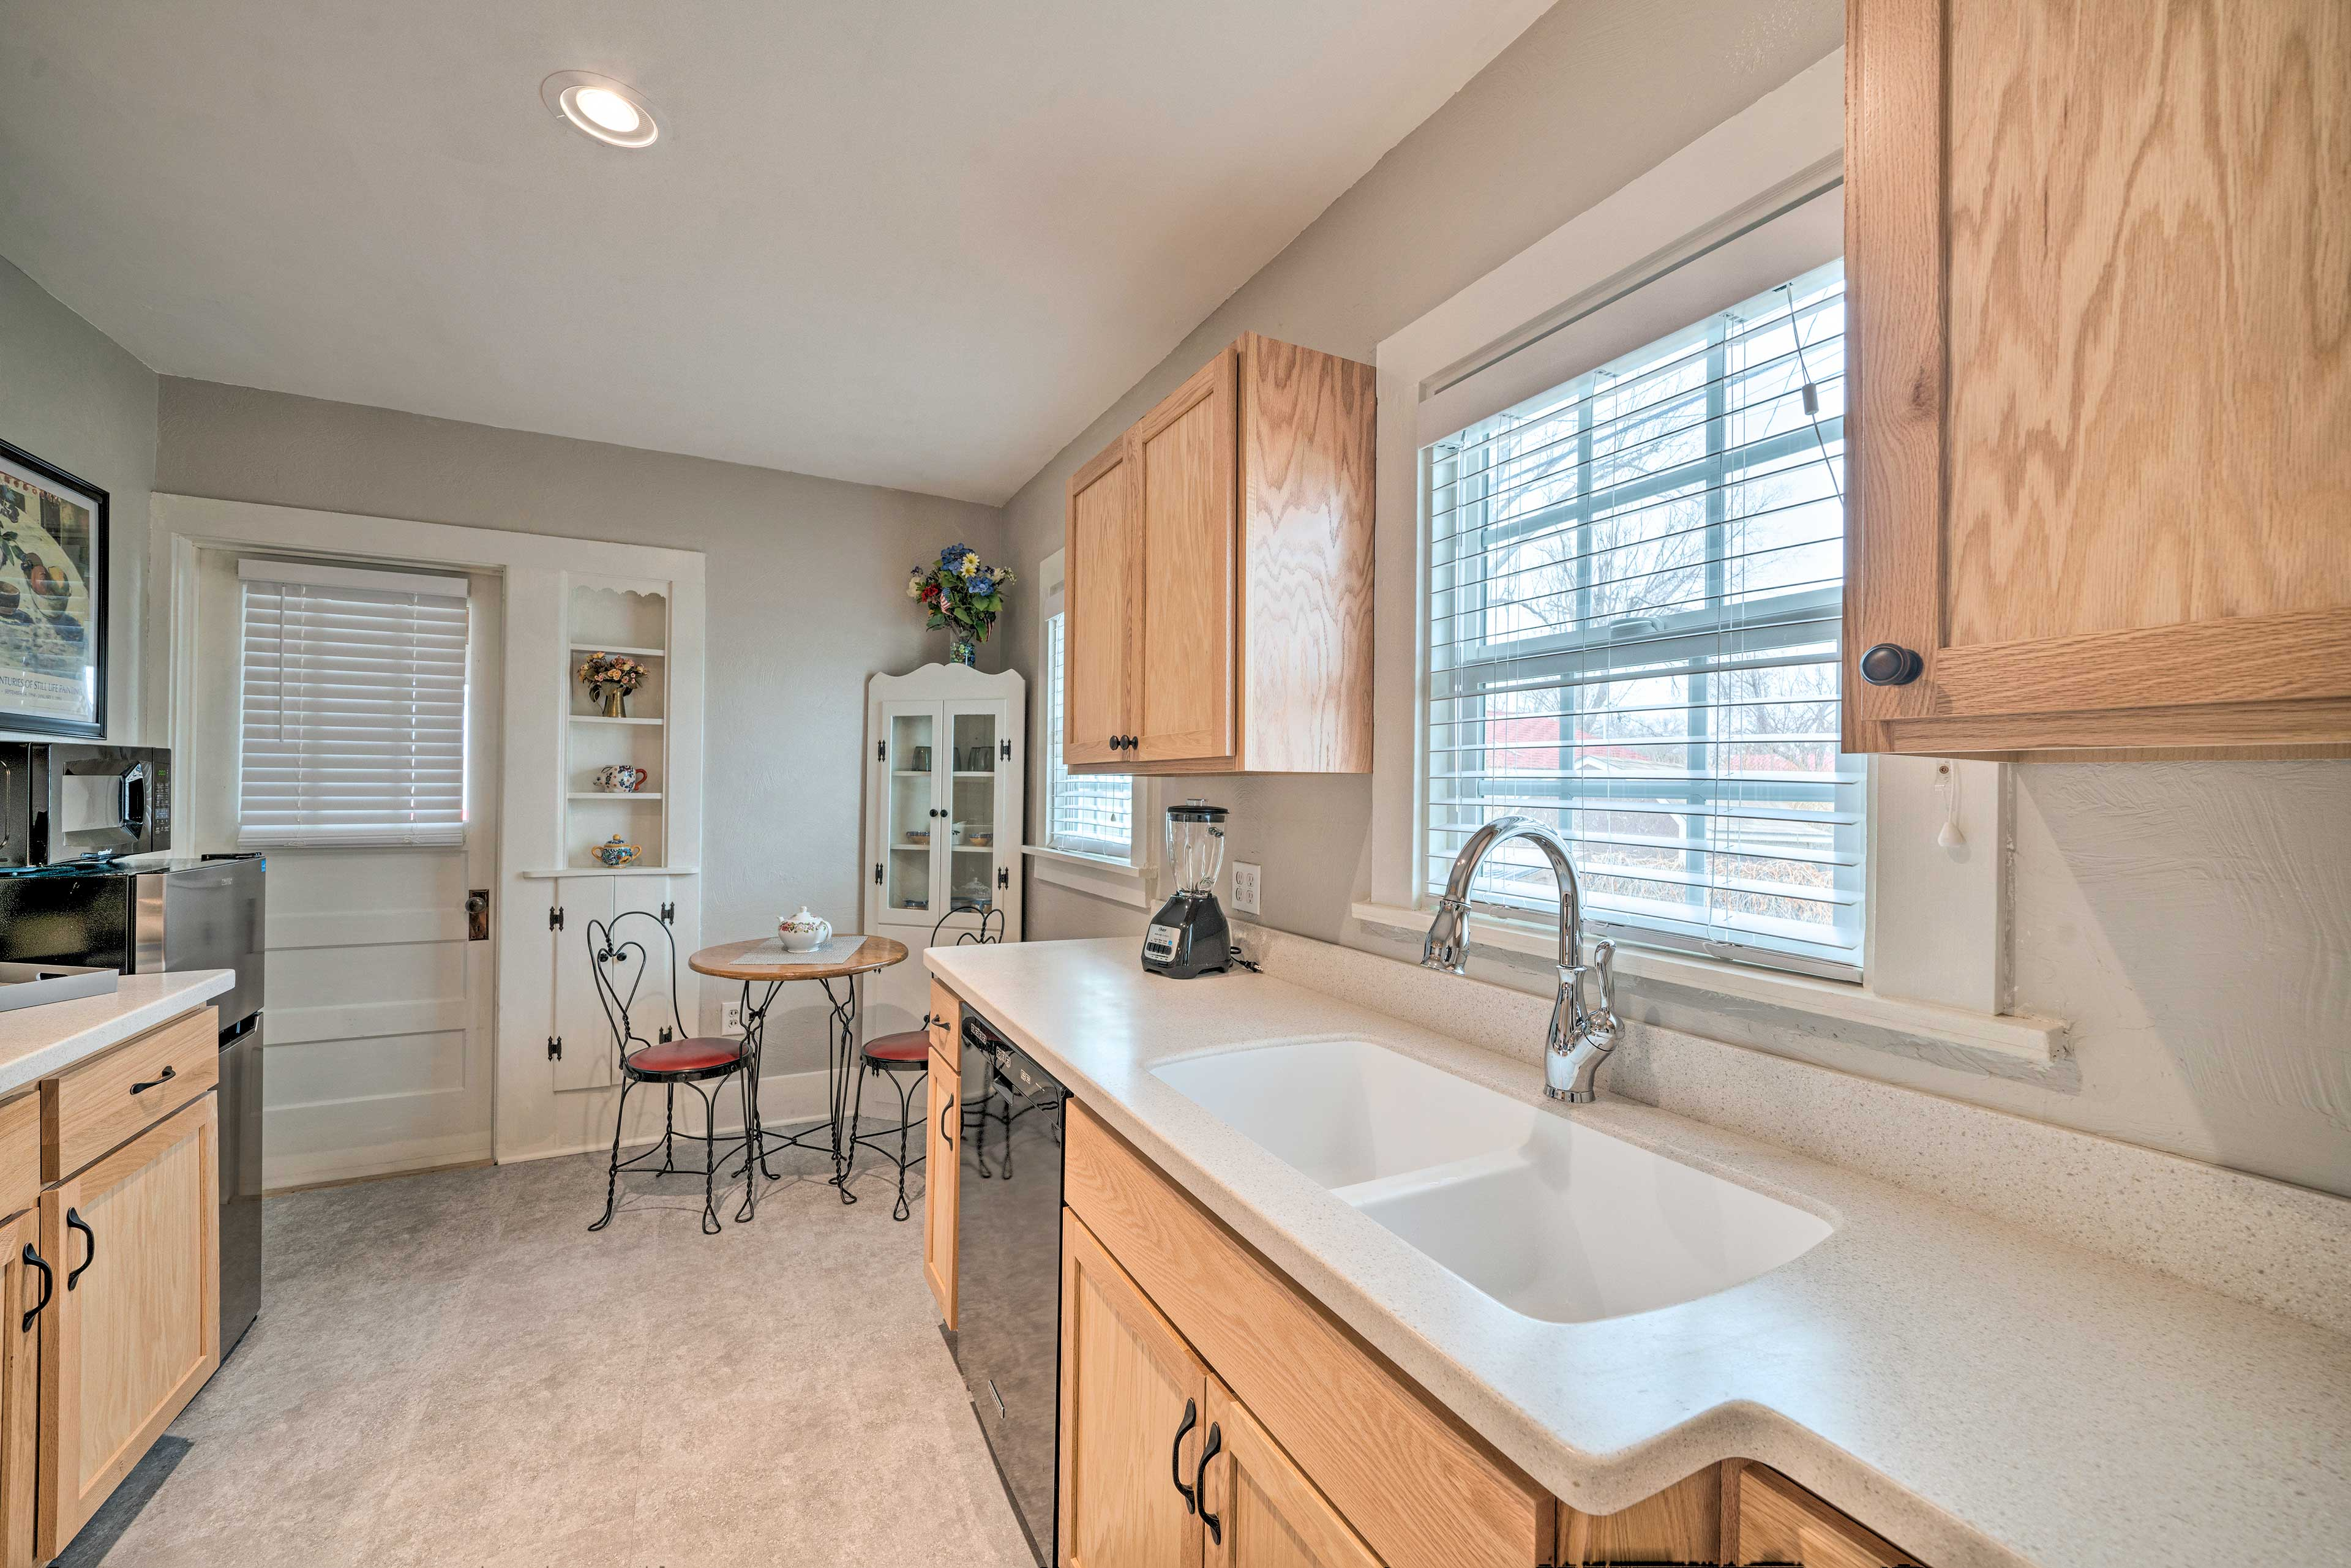 This kitchen offers ample counter space and modern amenities for your comfort.